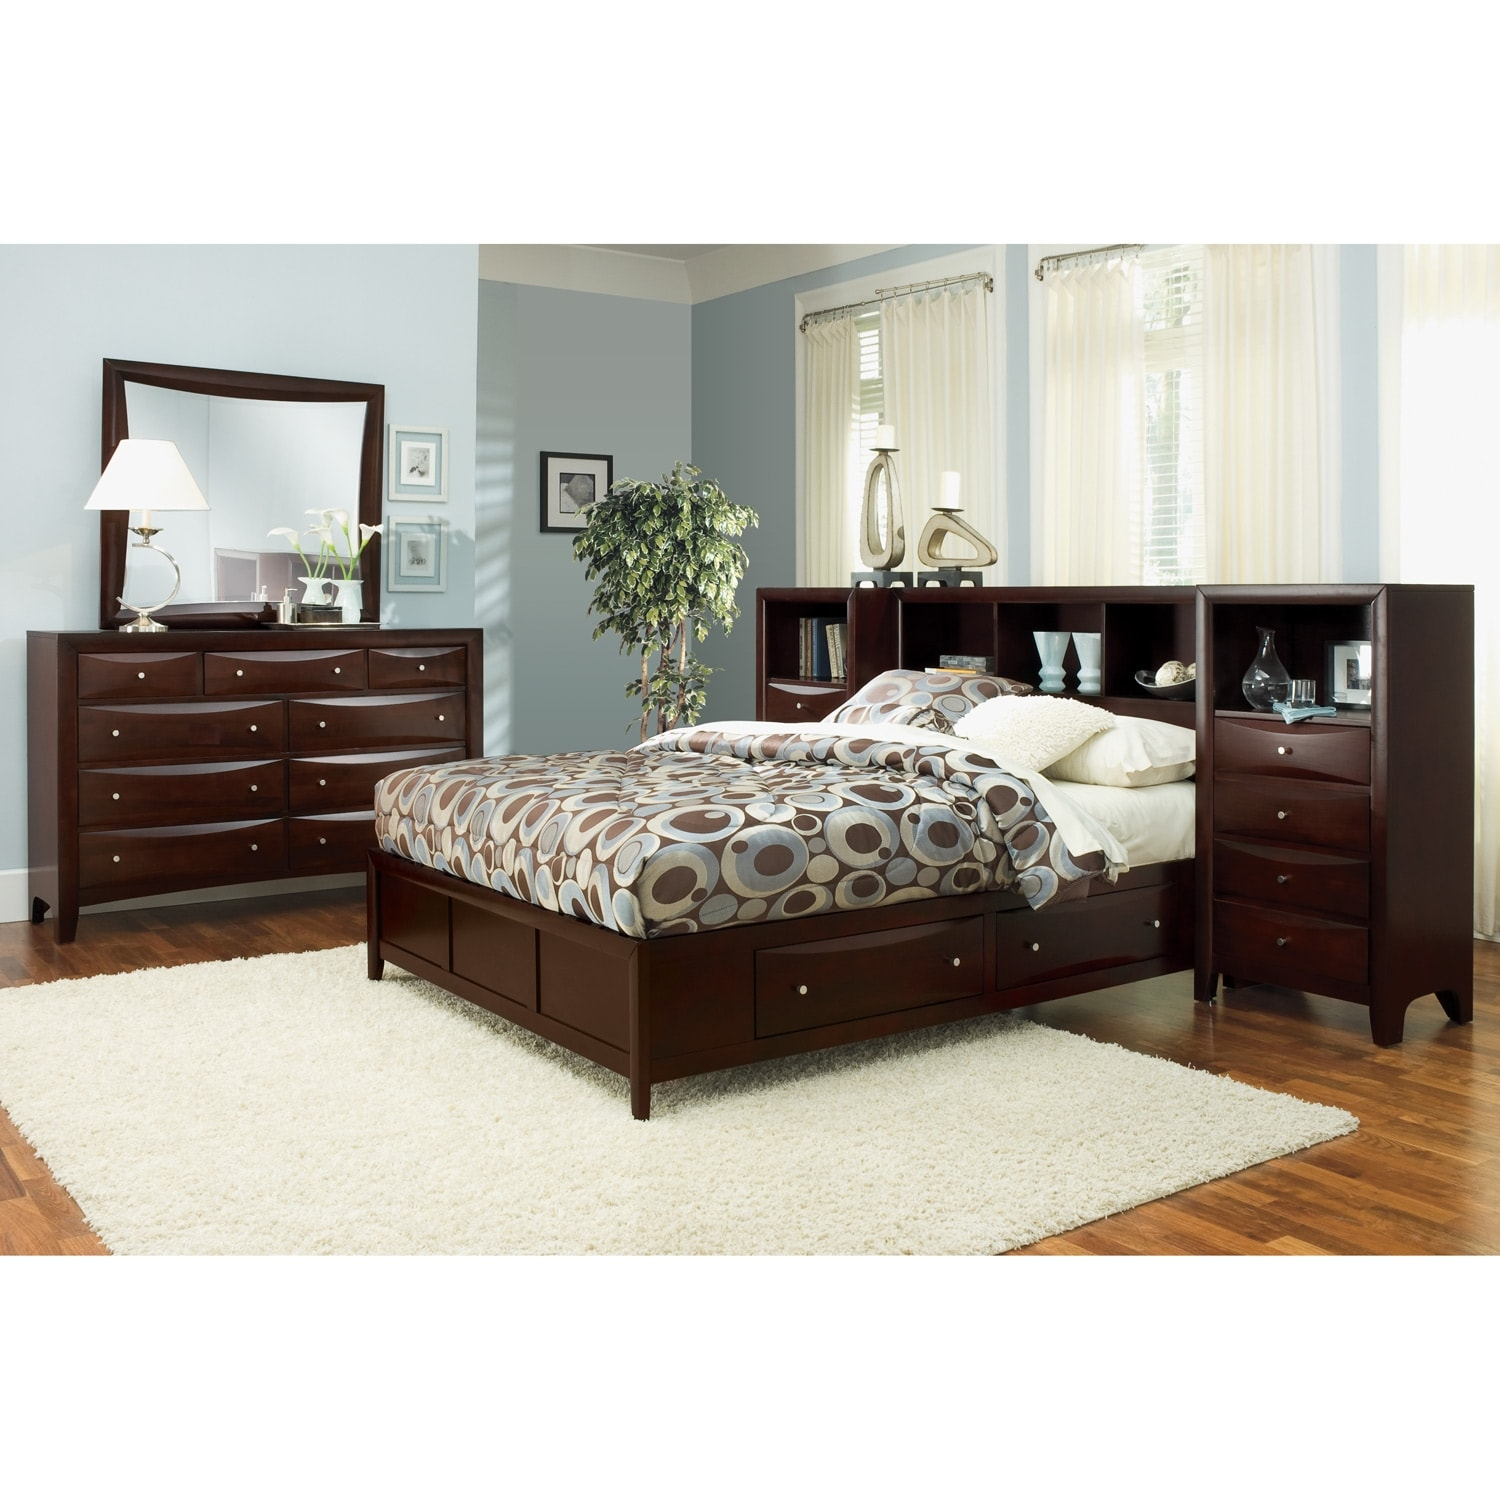 Bedroom colors with brown furniture - Master Bedroom Decorating Ideas With Dark Furniture Best